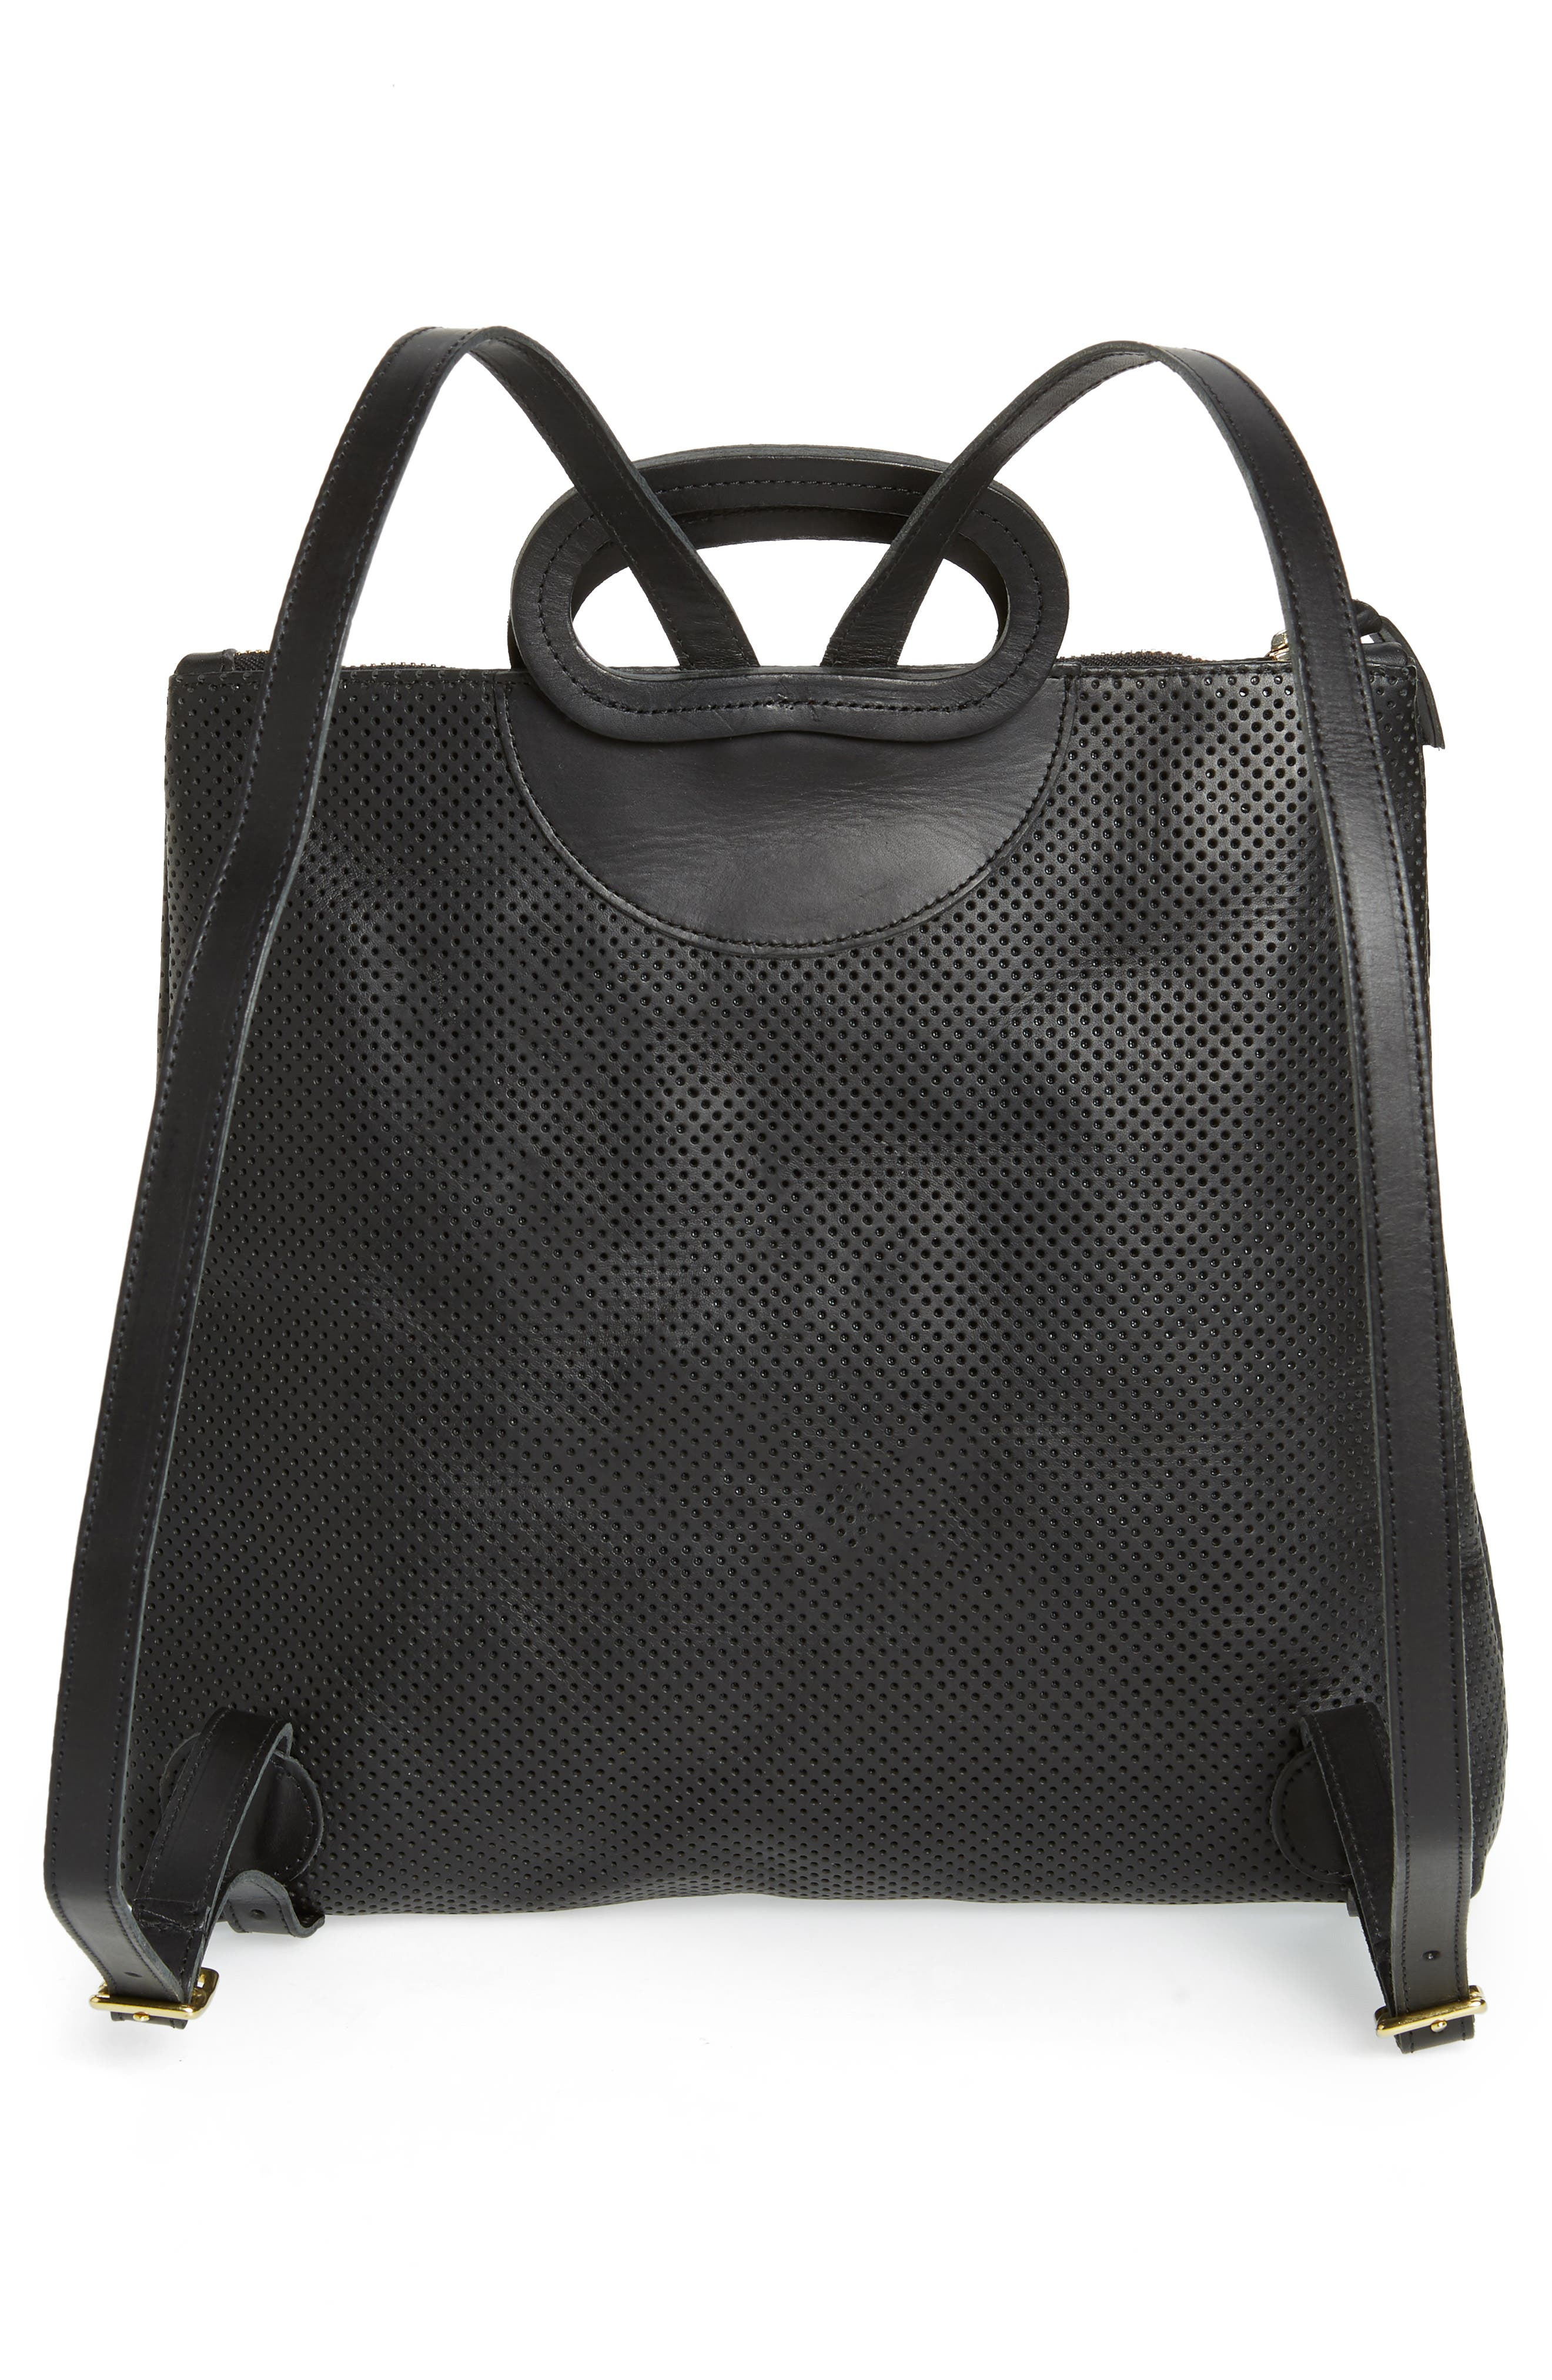 Marcelle Perforated Leather Backpack,                             Alternate thumbnail 3, color,                             BLACK PERF WITH NAVY/ RED